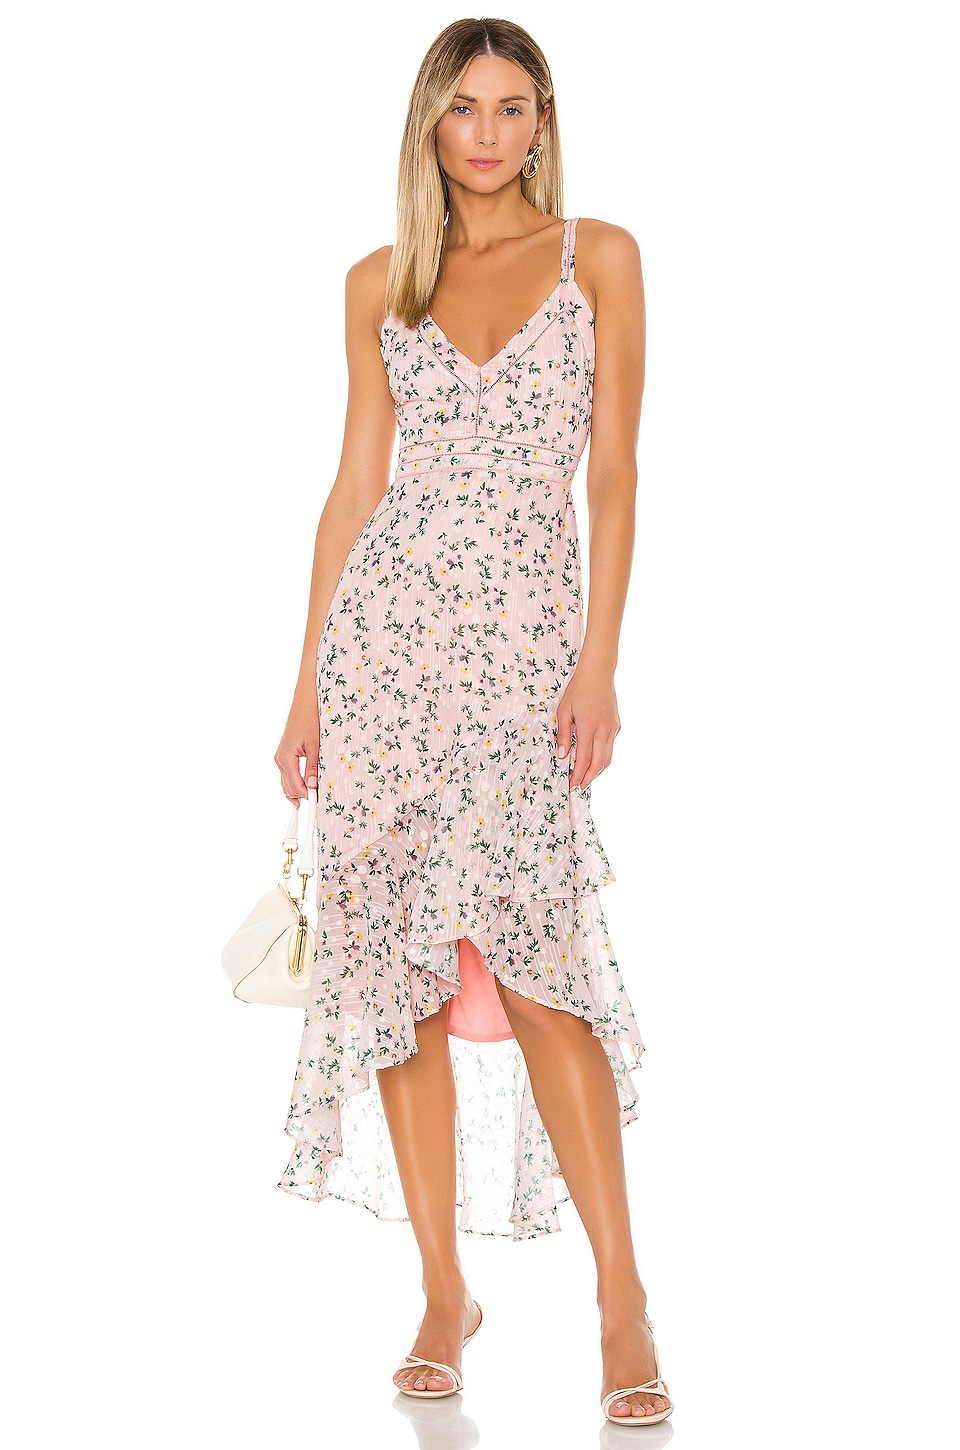 Tularosa Maya Dress in Pale Pink Floral